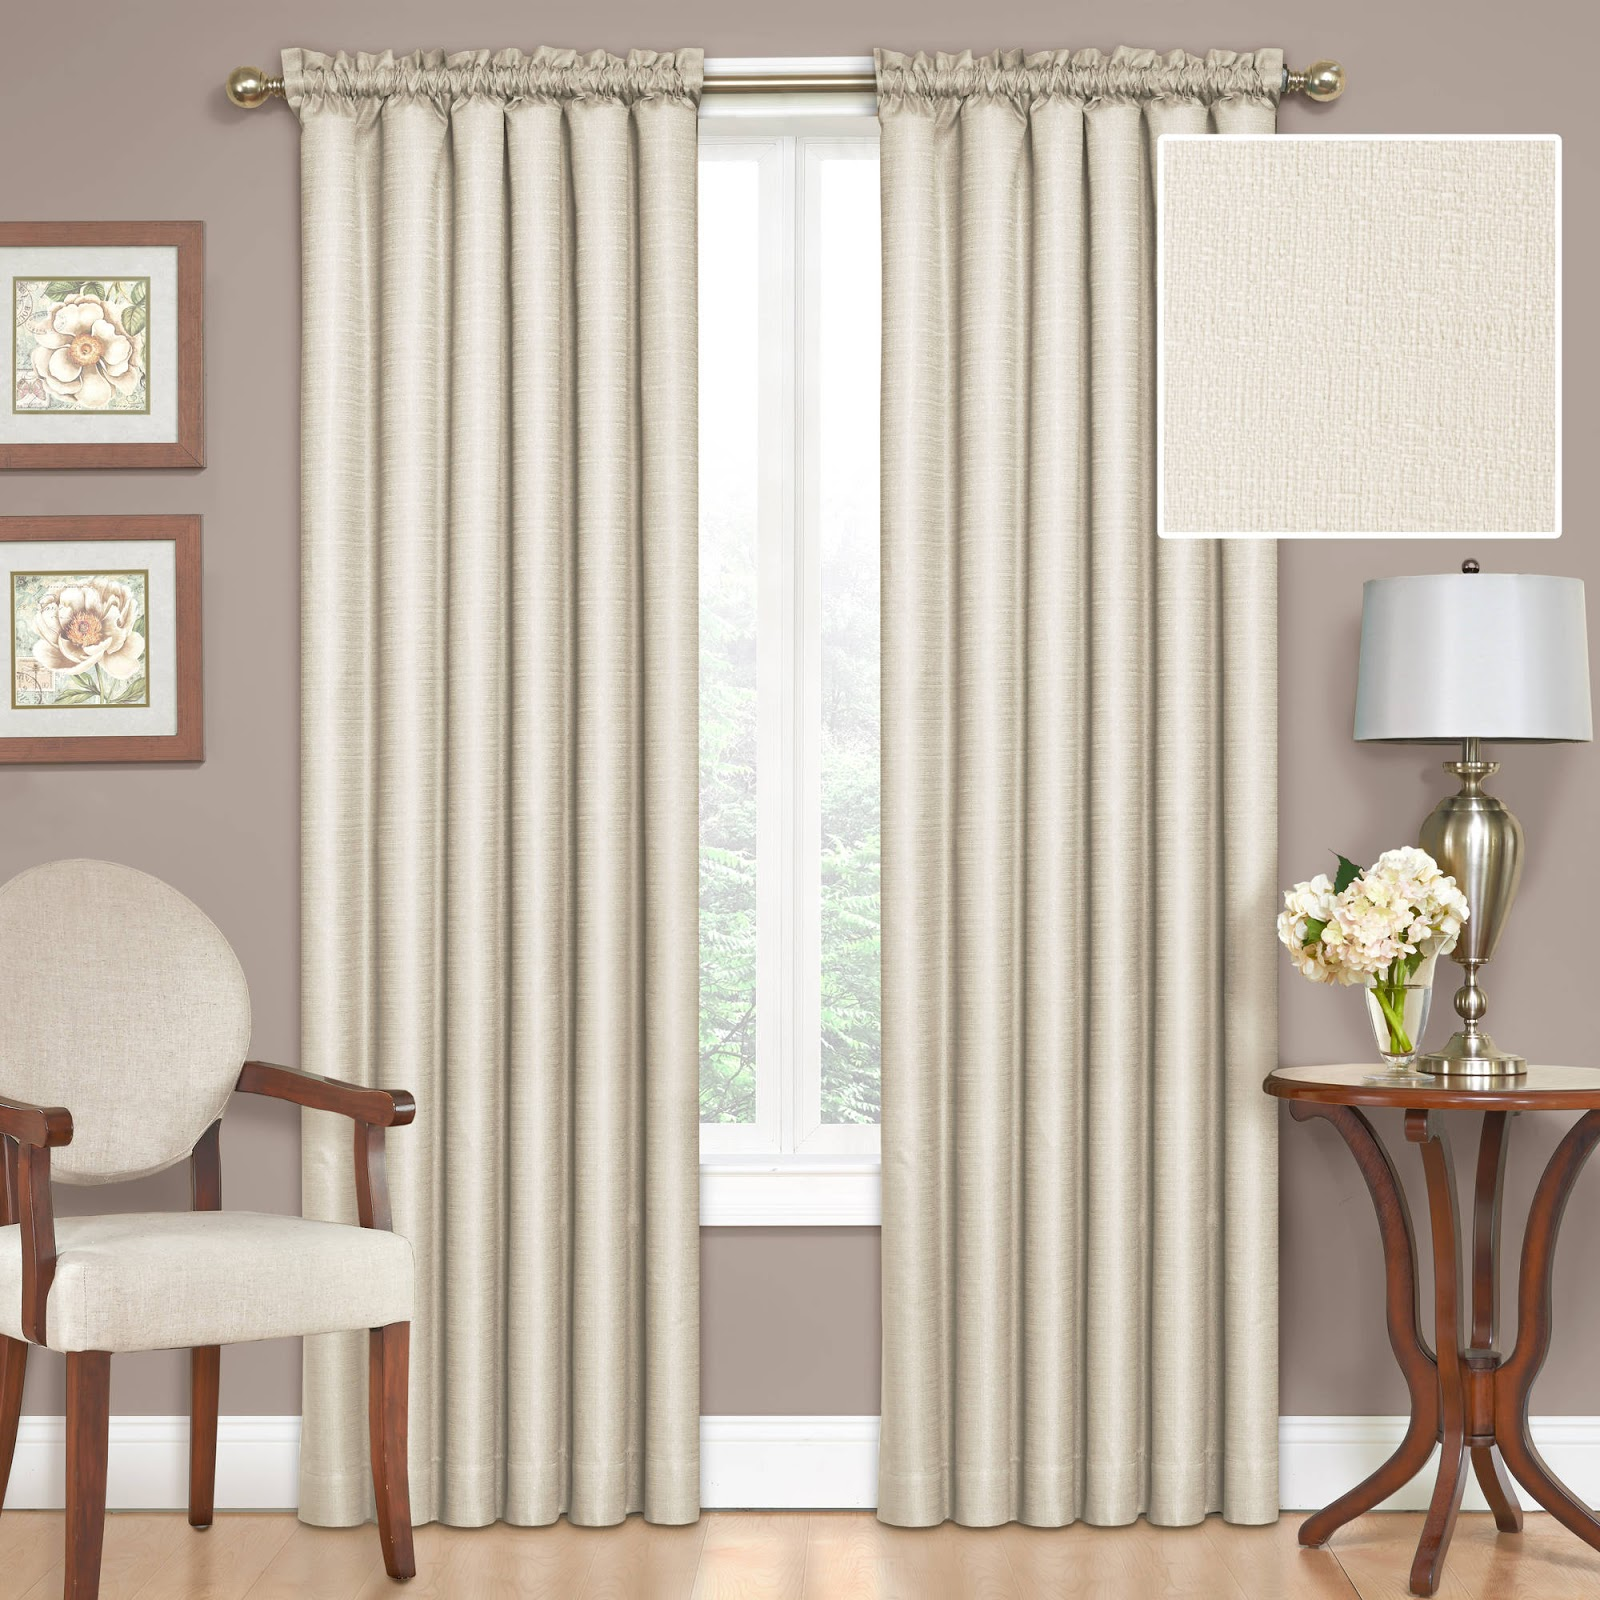 Curtain Size Chart For Window Sizes Sizing Guide